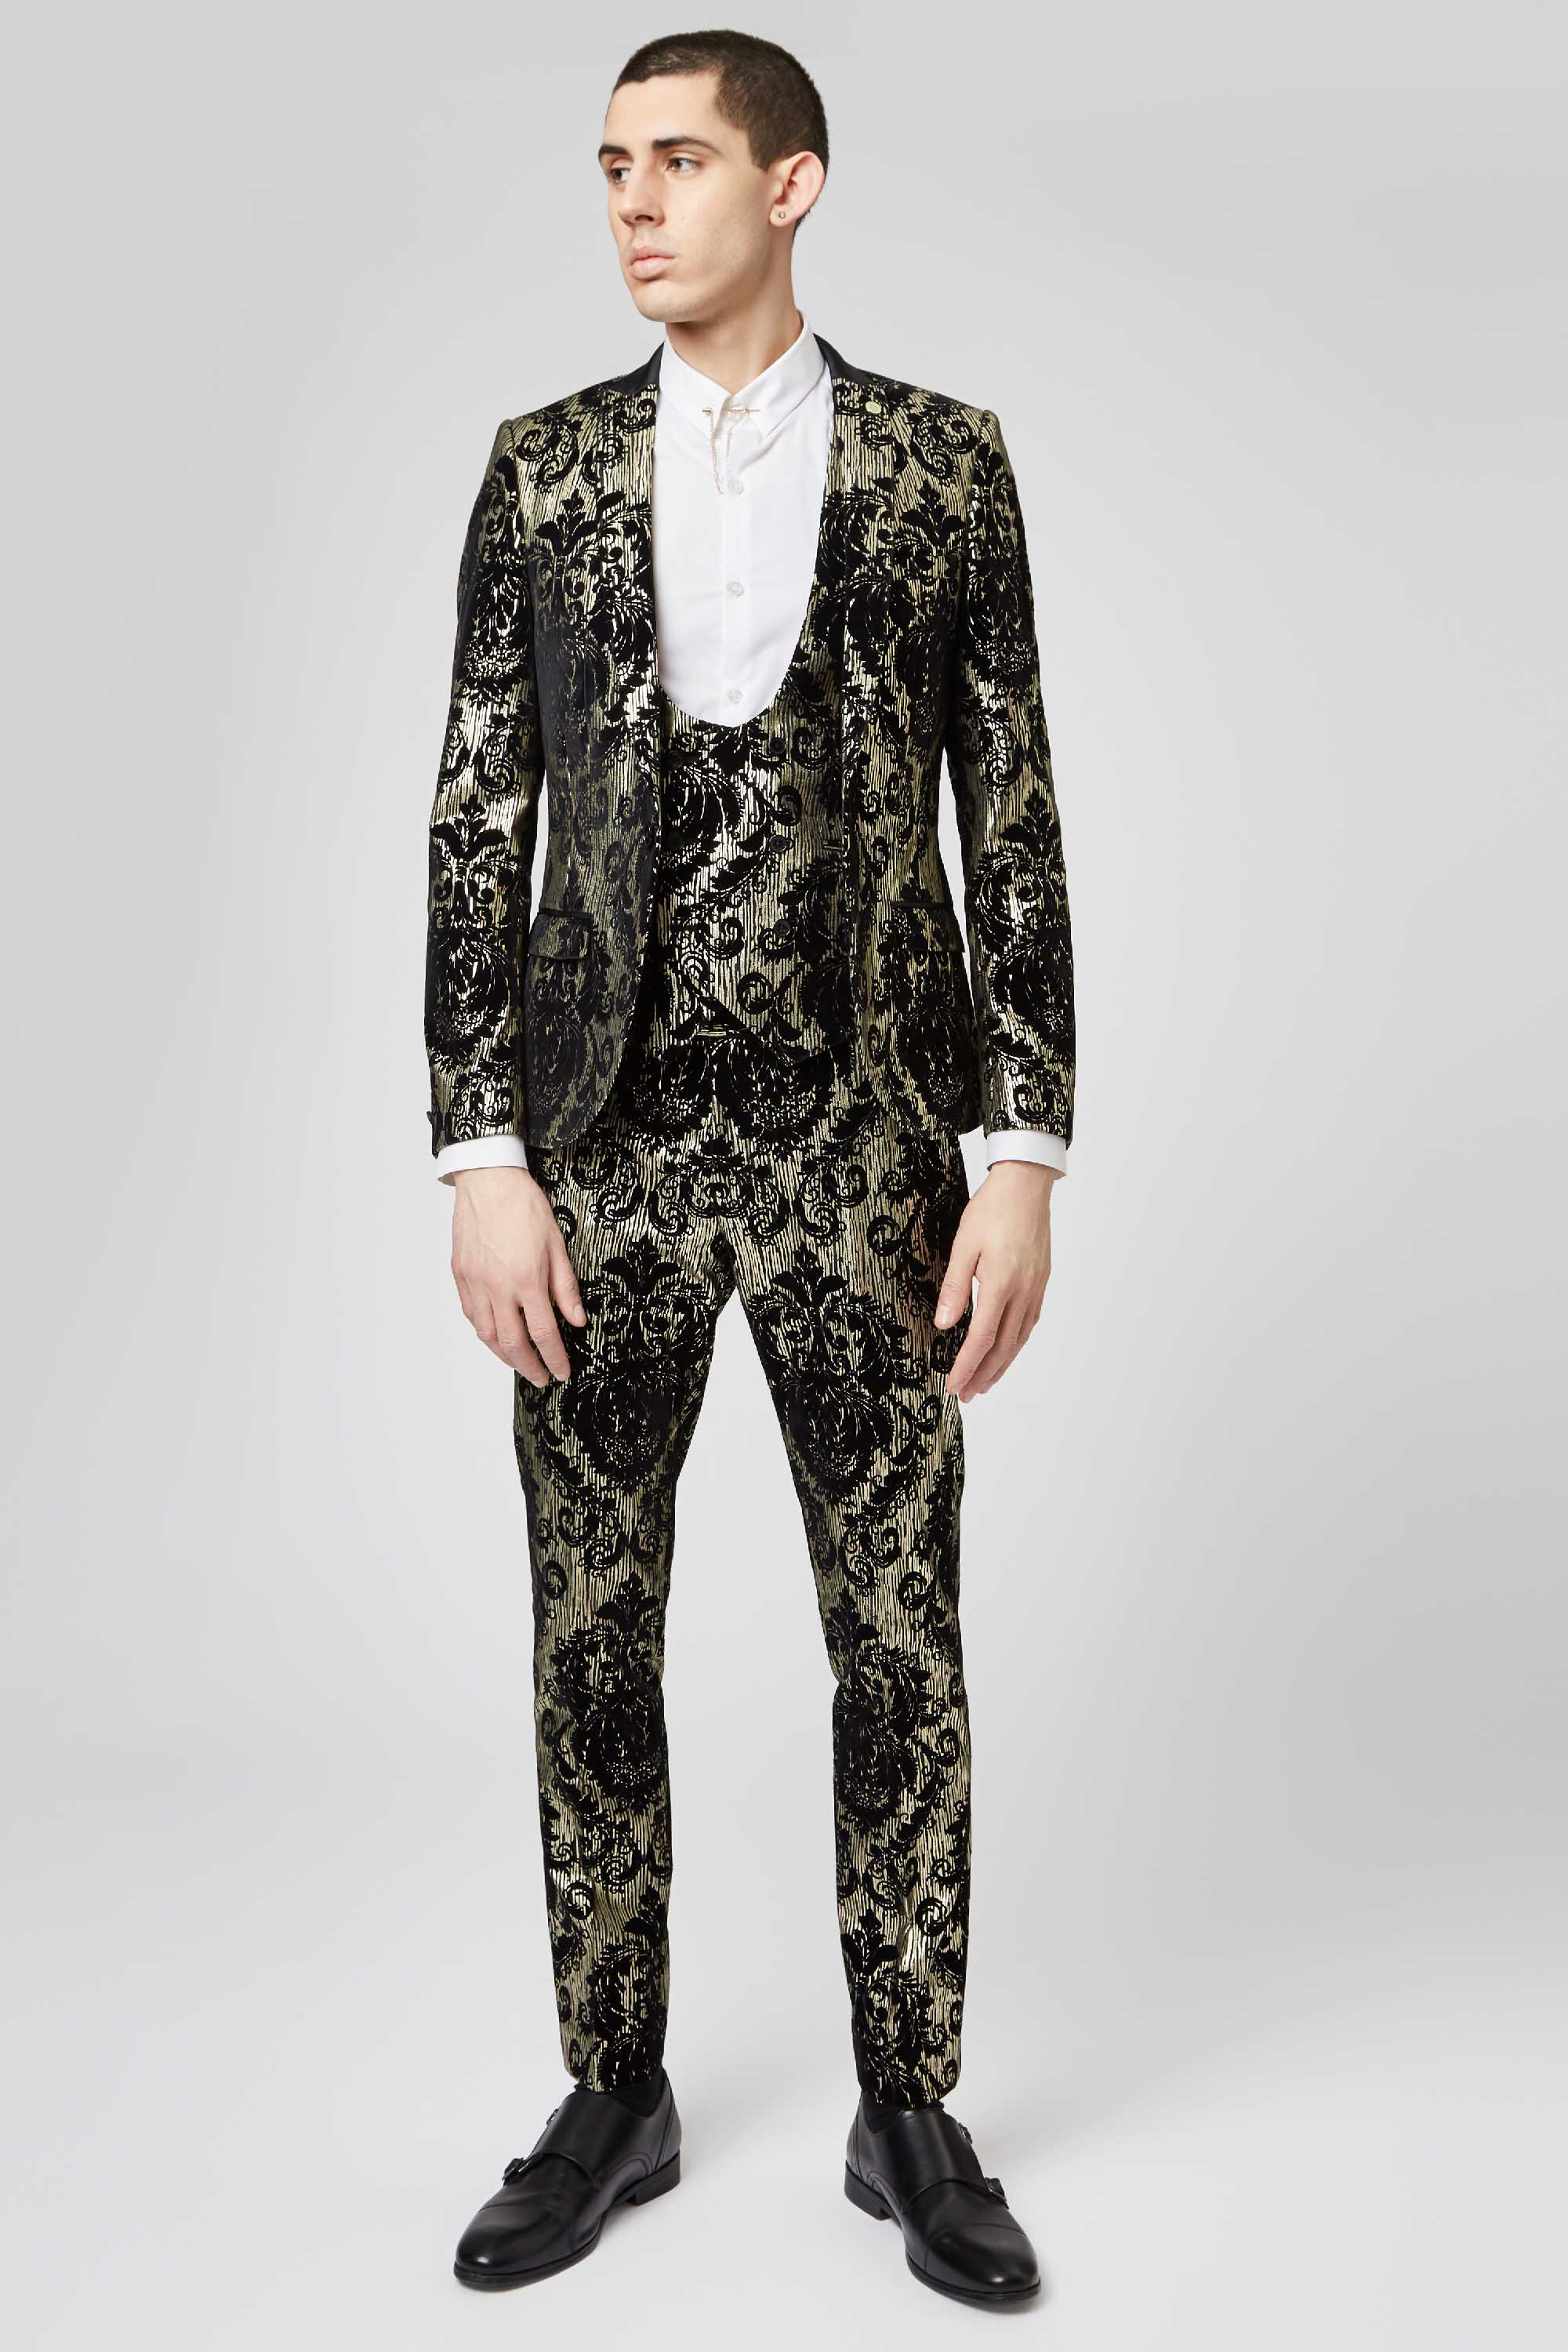 PRYOR SKINNY FIT BLACK SUIT JACKET WITH BAROQUE FLOCK AND FOIL PRINT